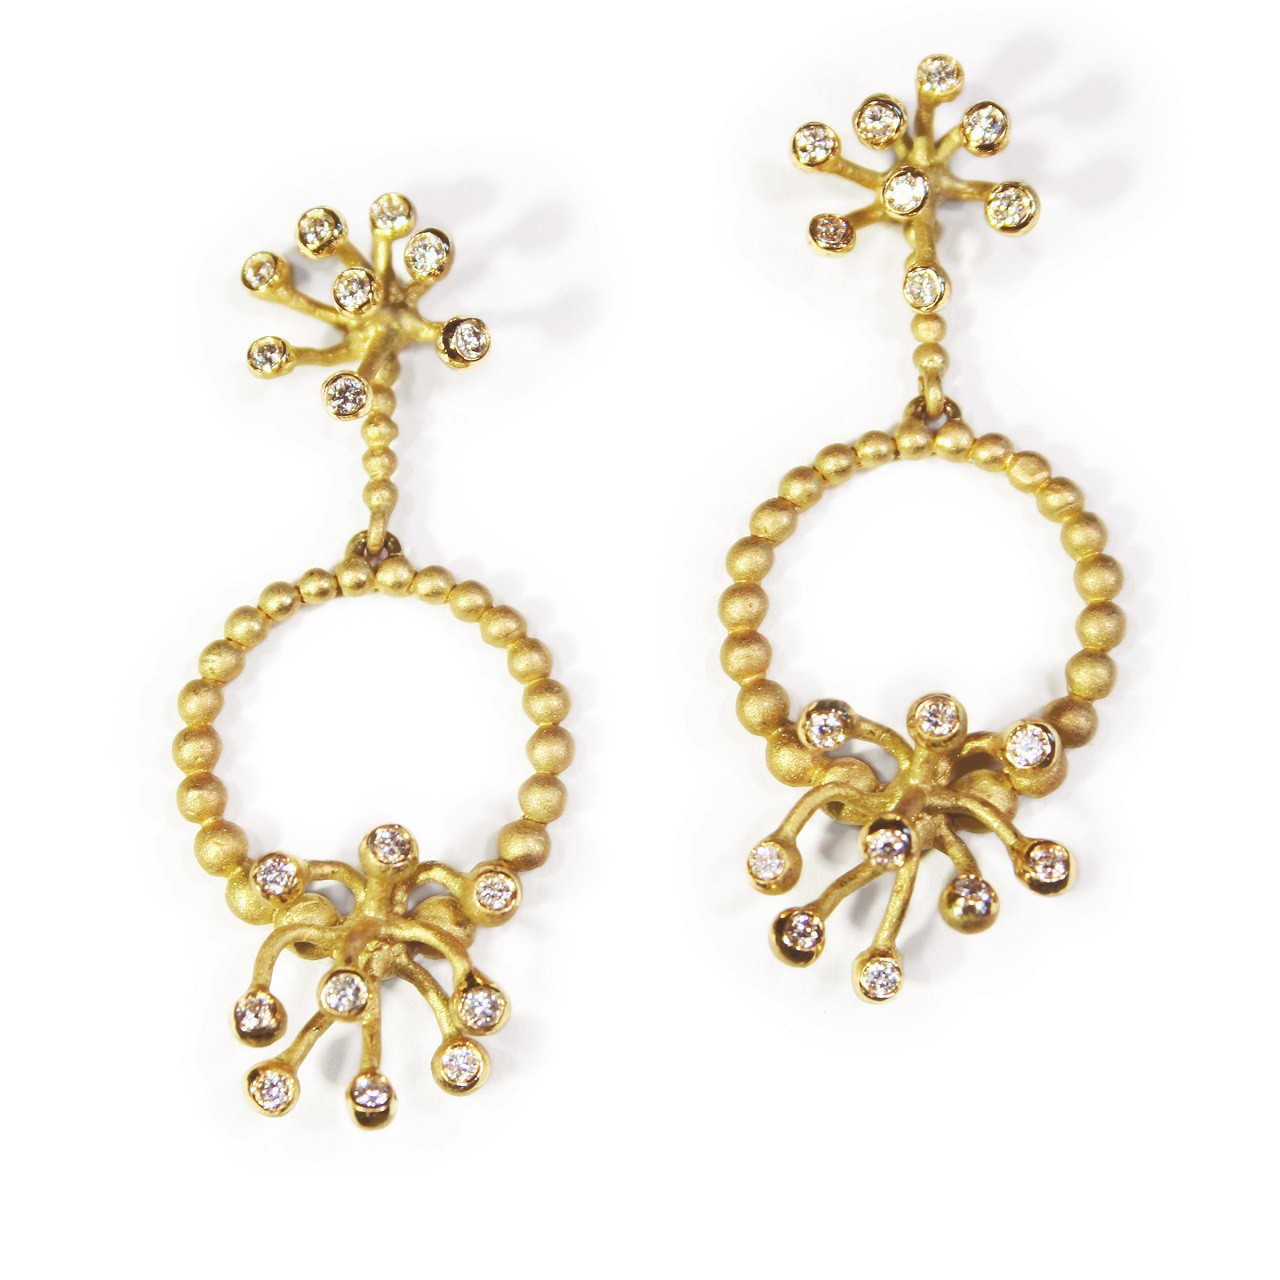 Circle Fireworks gold and diamond earrings.  They come apart and can be worn a variety of ways.